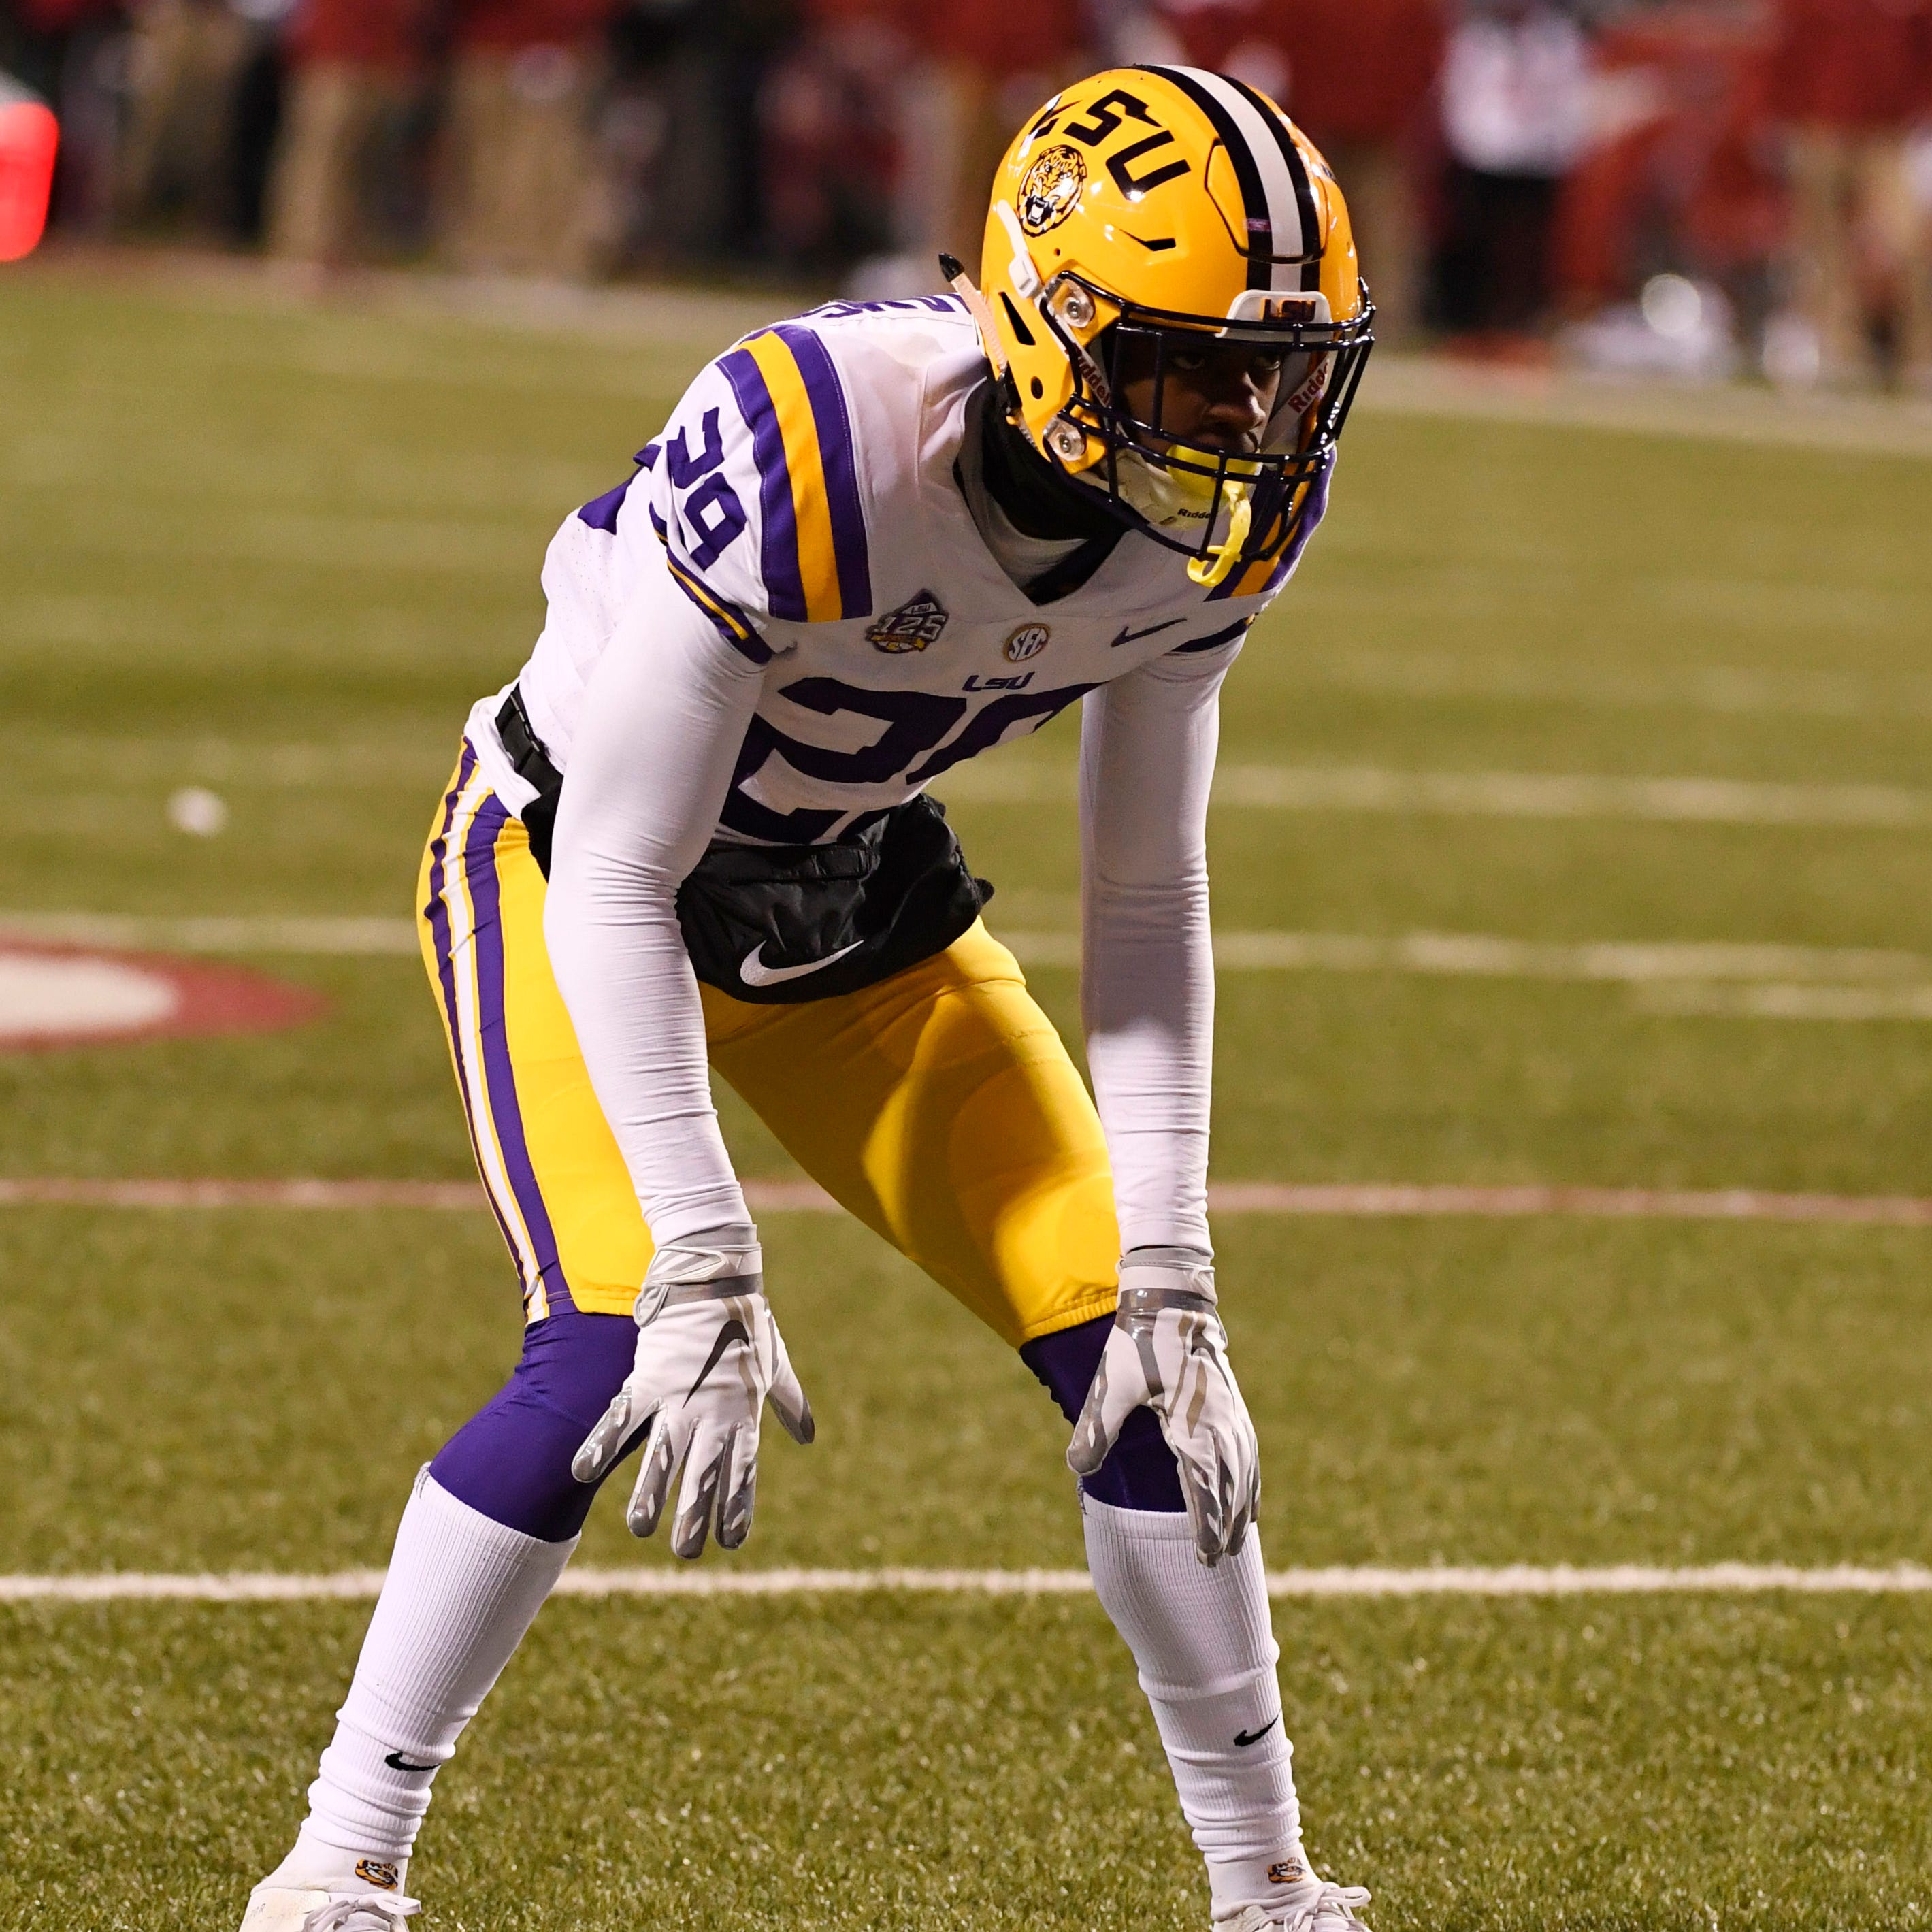 Lions select LSU CB Greedy Williams in Todd McShay's latest mock draft for ESPN